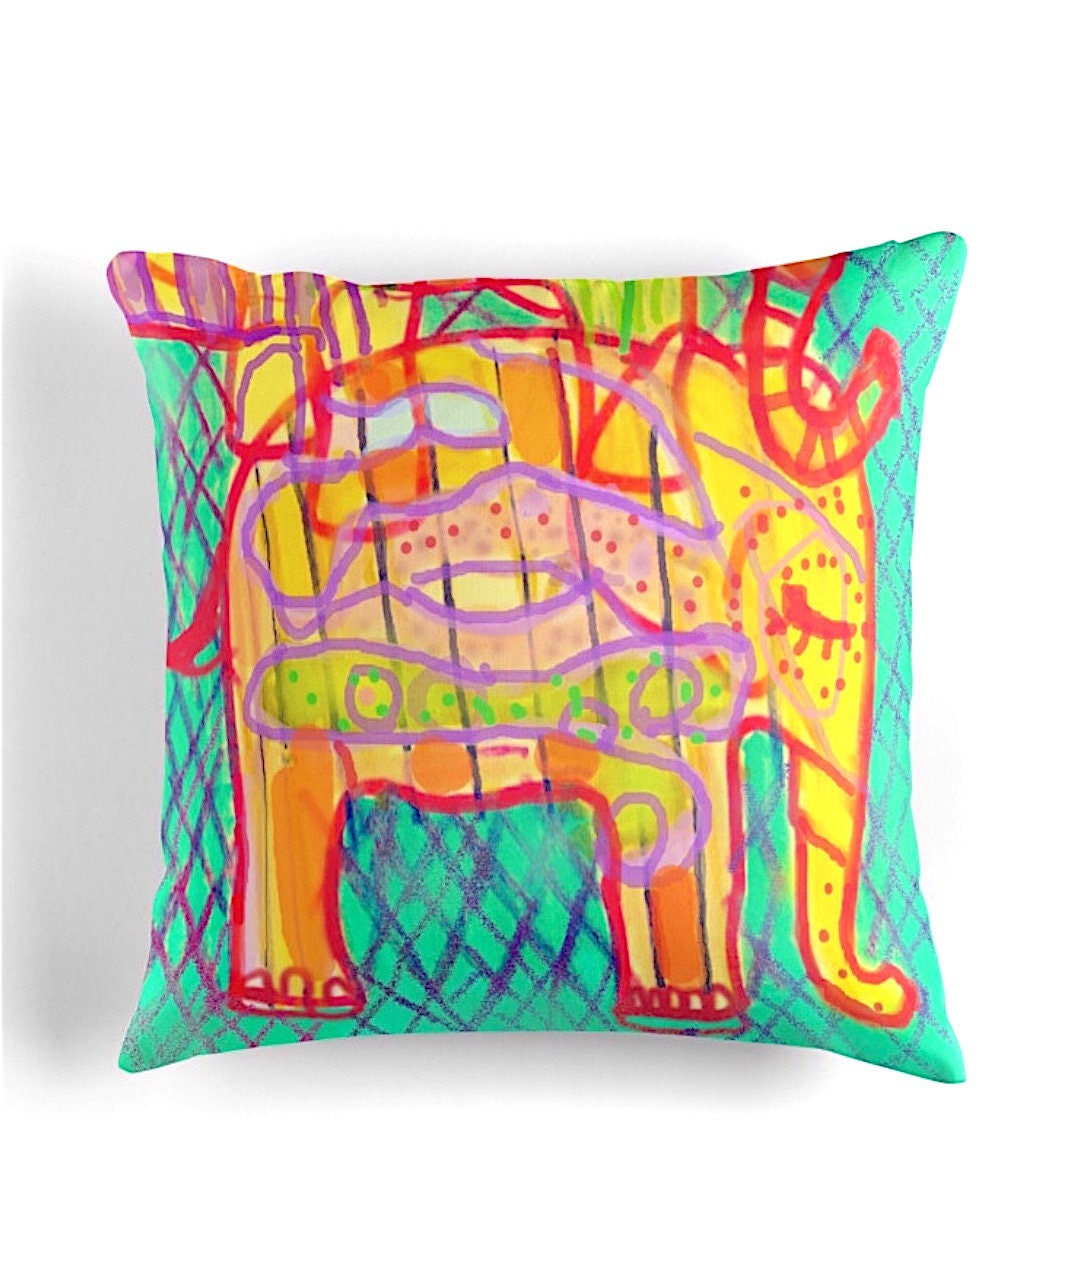 Elephant Throw Pillow home decor printed throw cushion 41x41cm 16